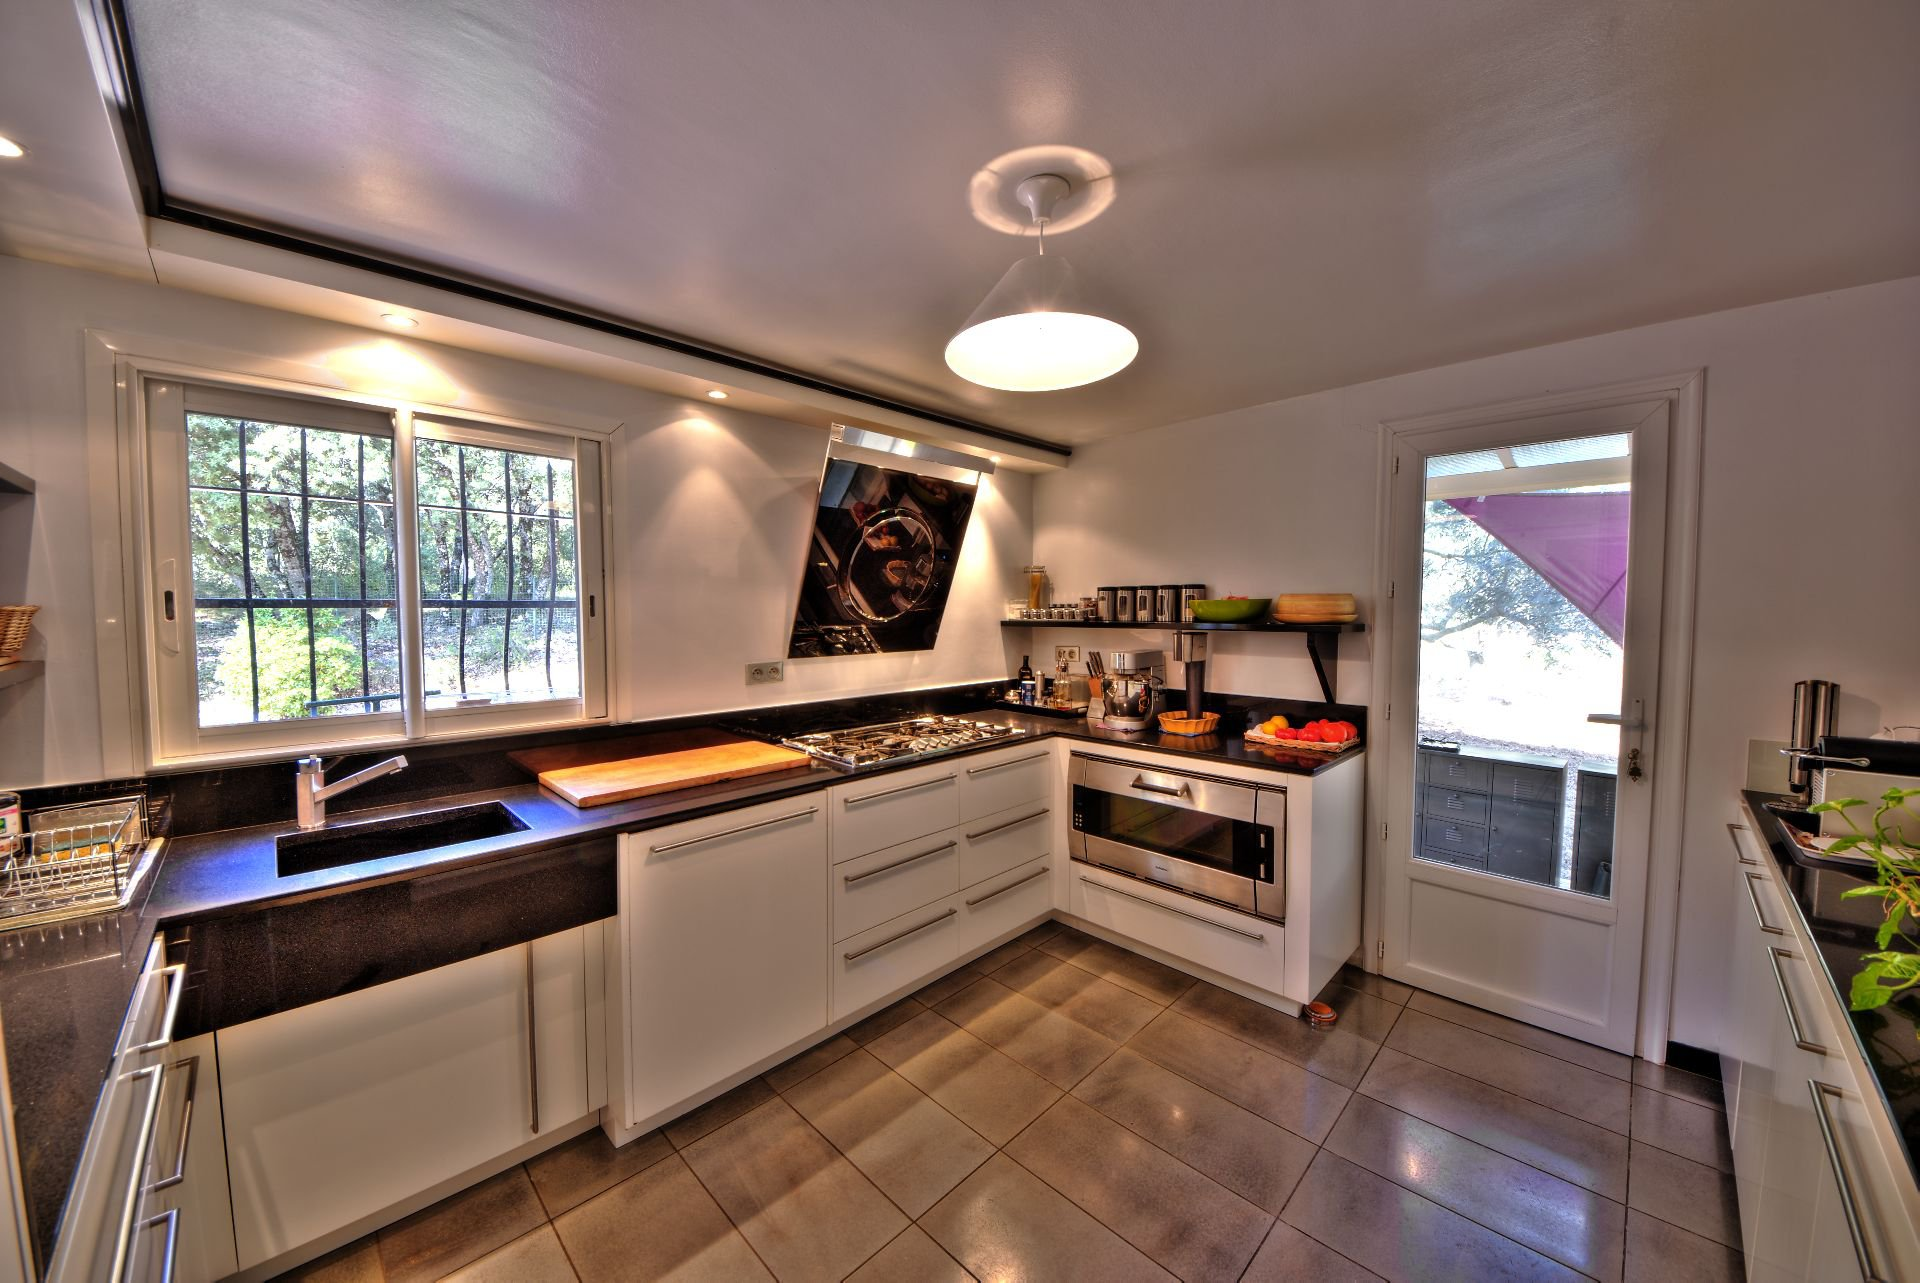 200 m² living room kitchen, 4 bedrooms, outbuilding on 8000 m² agricultural area, Ampus, Var, Provence, Paca